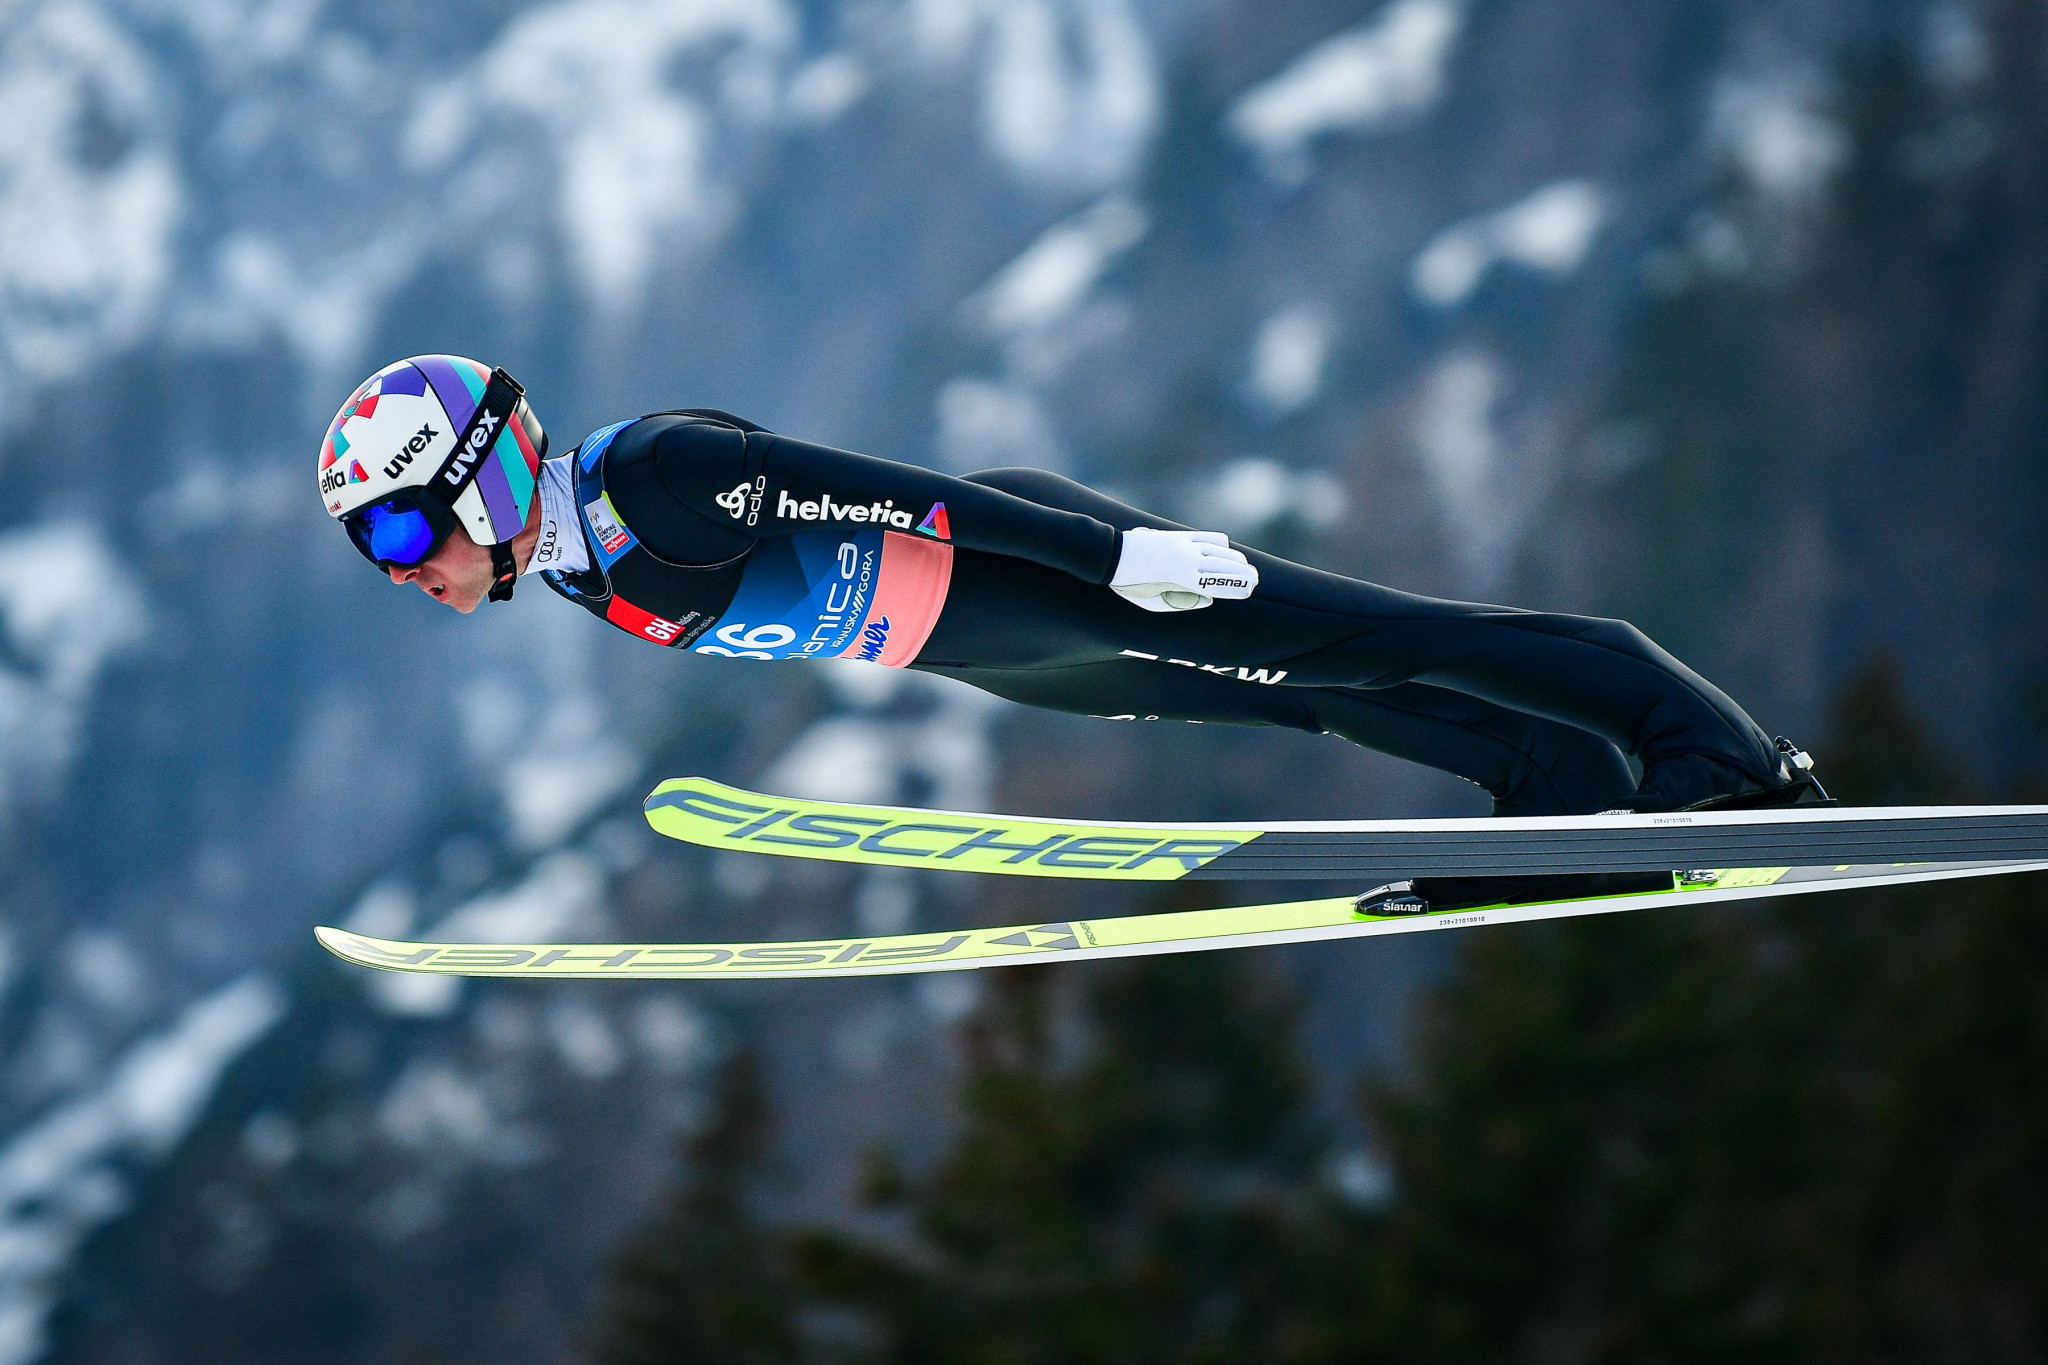 Four-time Olympic champion Ammann tears foot ligament but does not need surgery